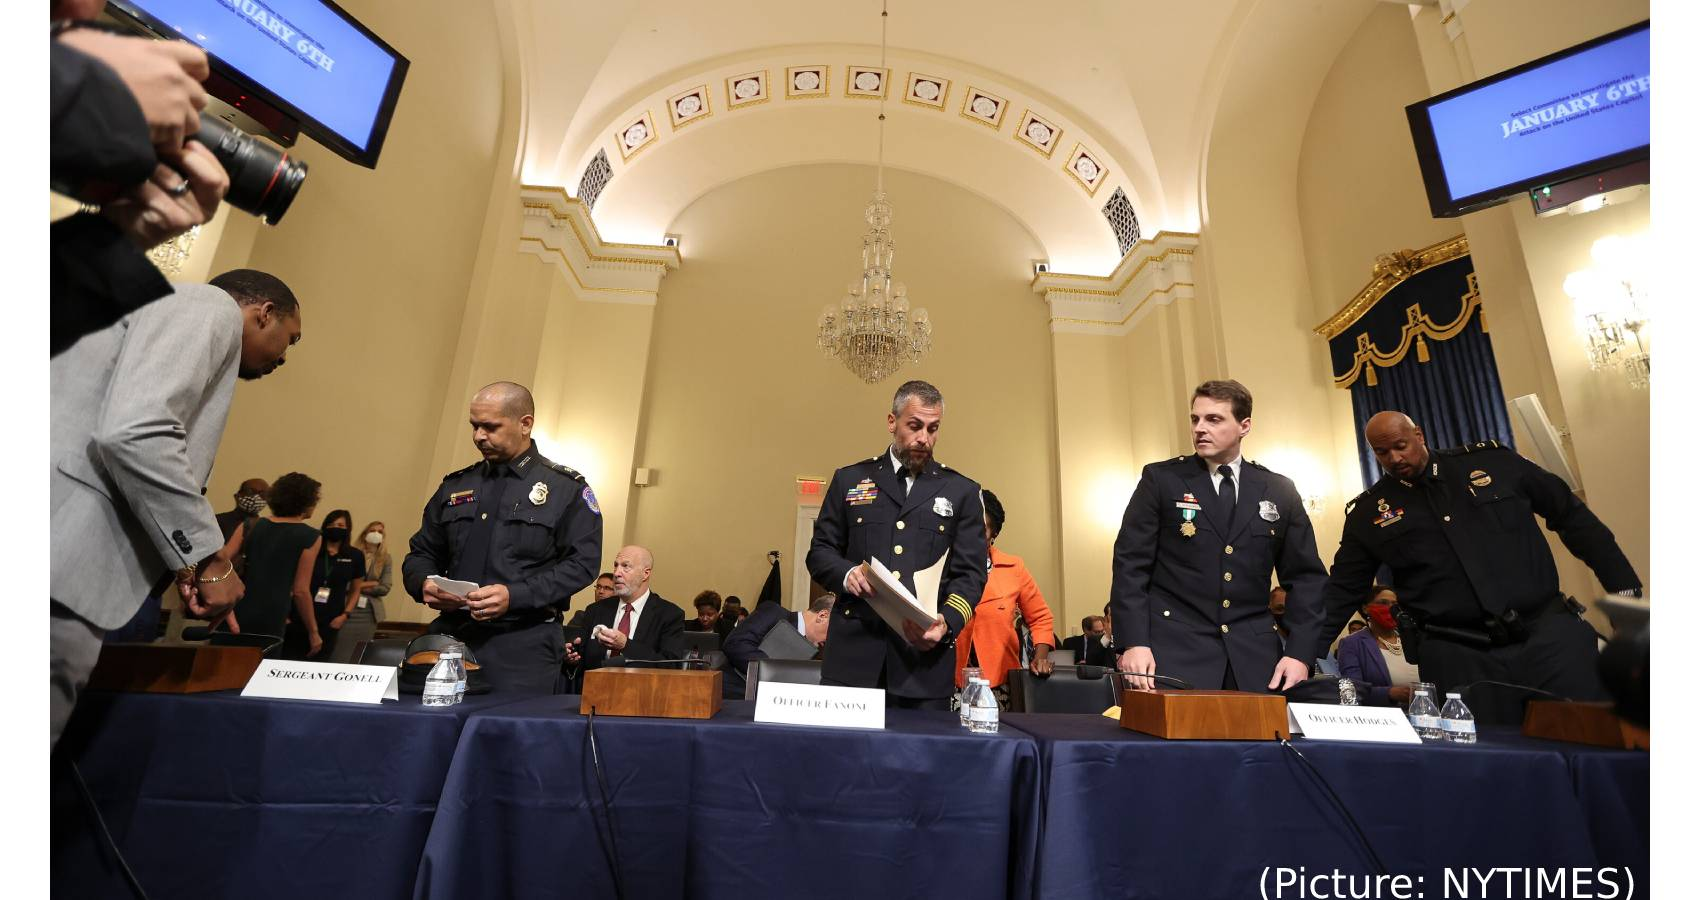 US Congress Begins Investigation Into January 6th Capitol Attack